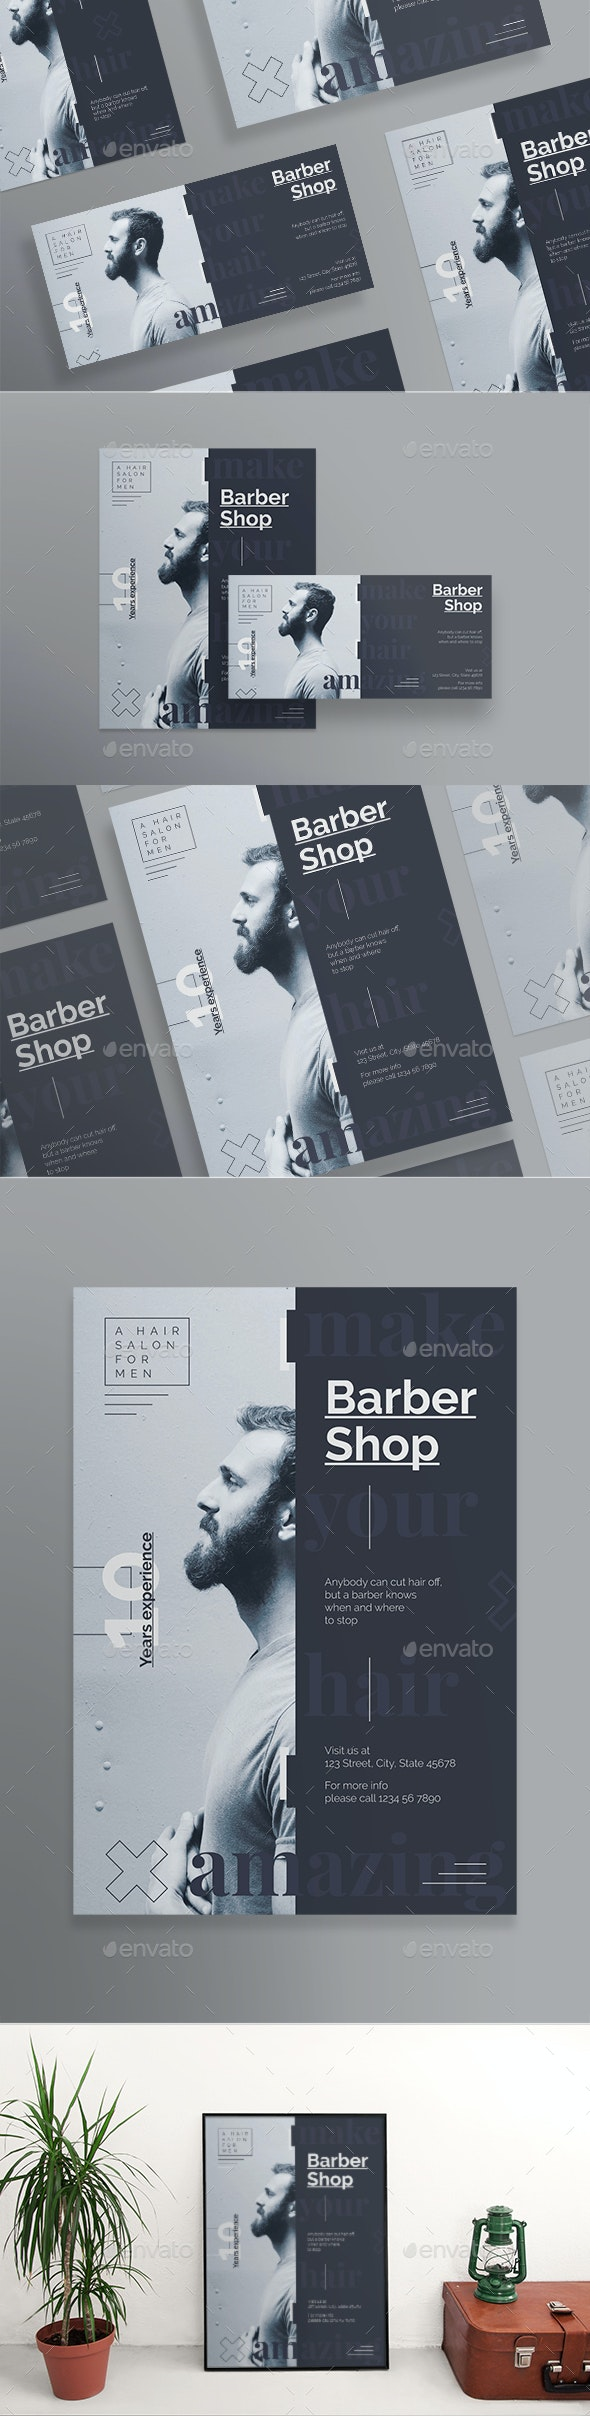 Barber Shop Flyers - Corporate Flyers